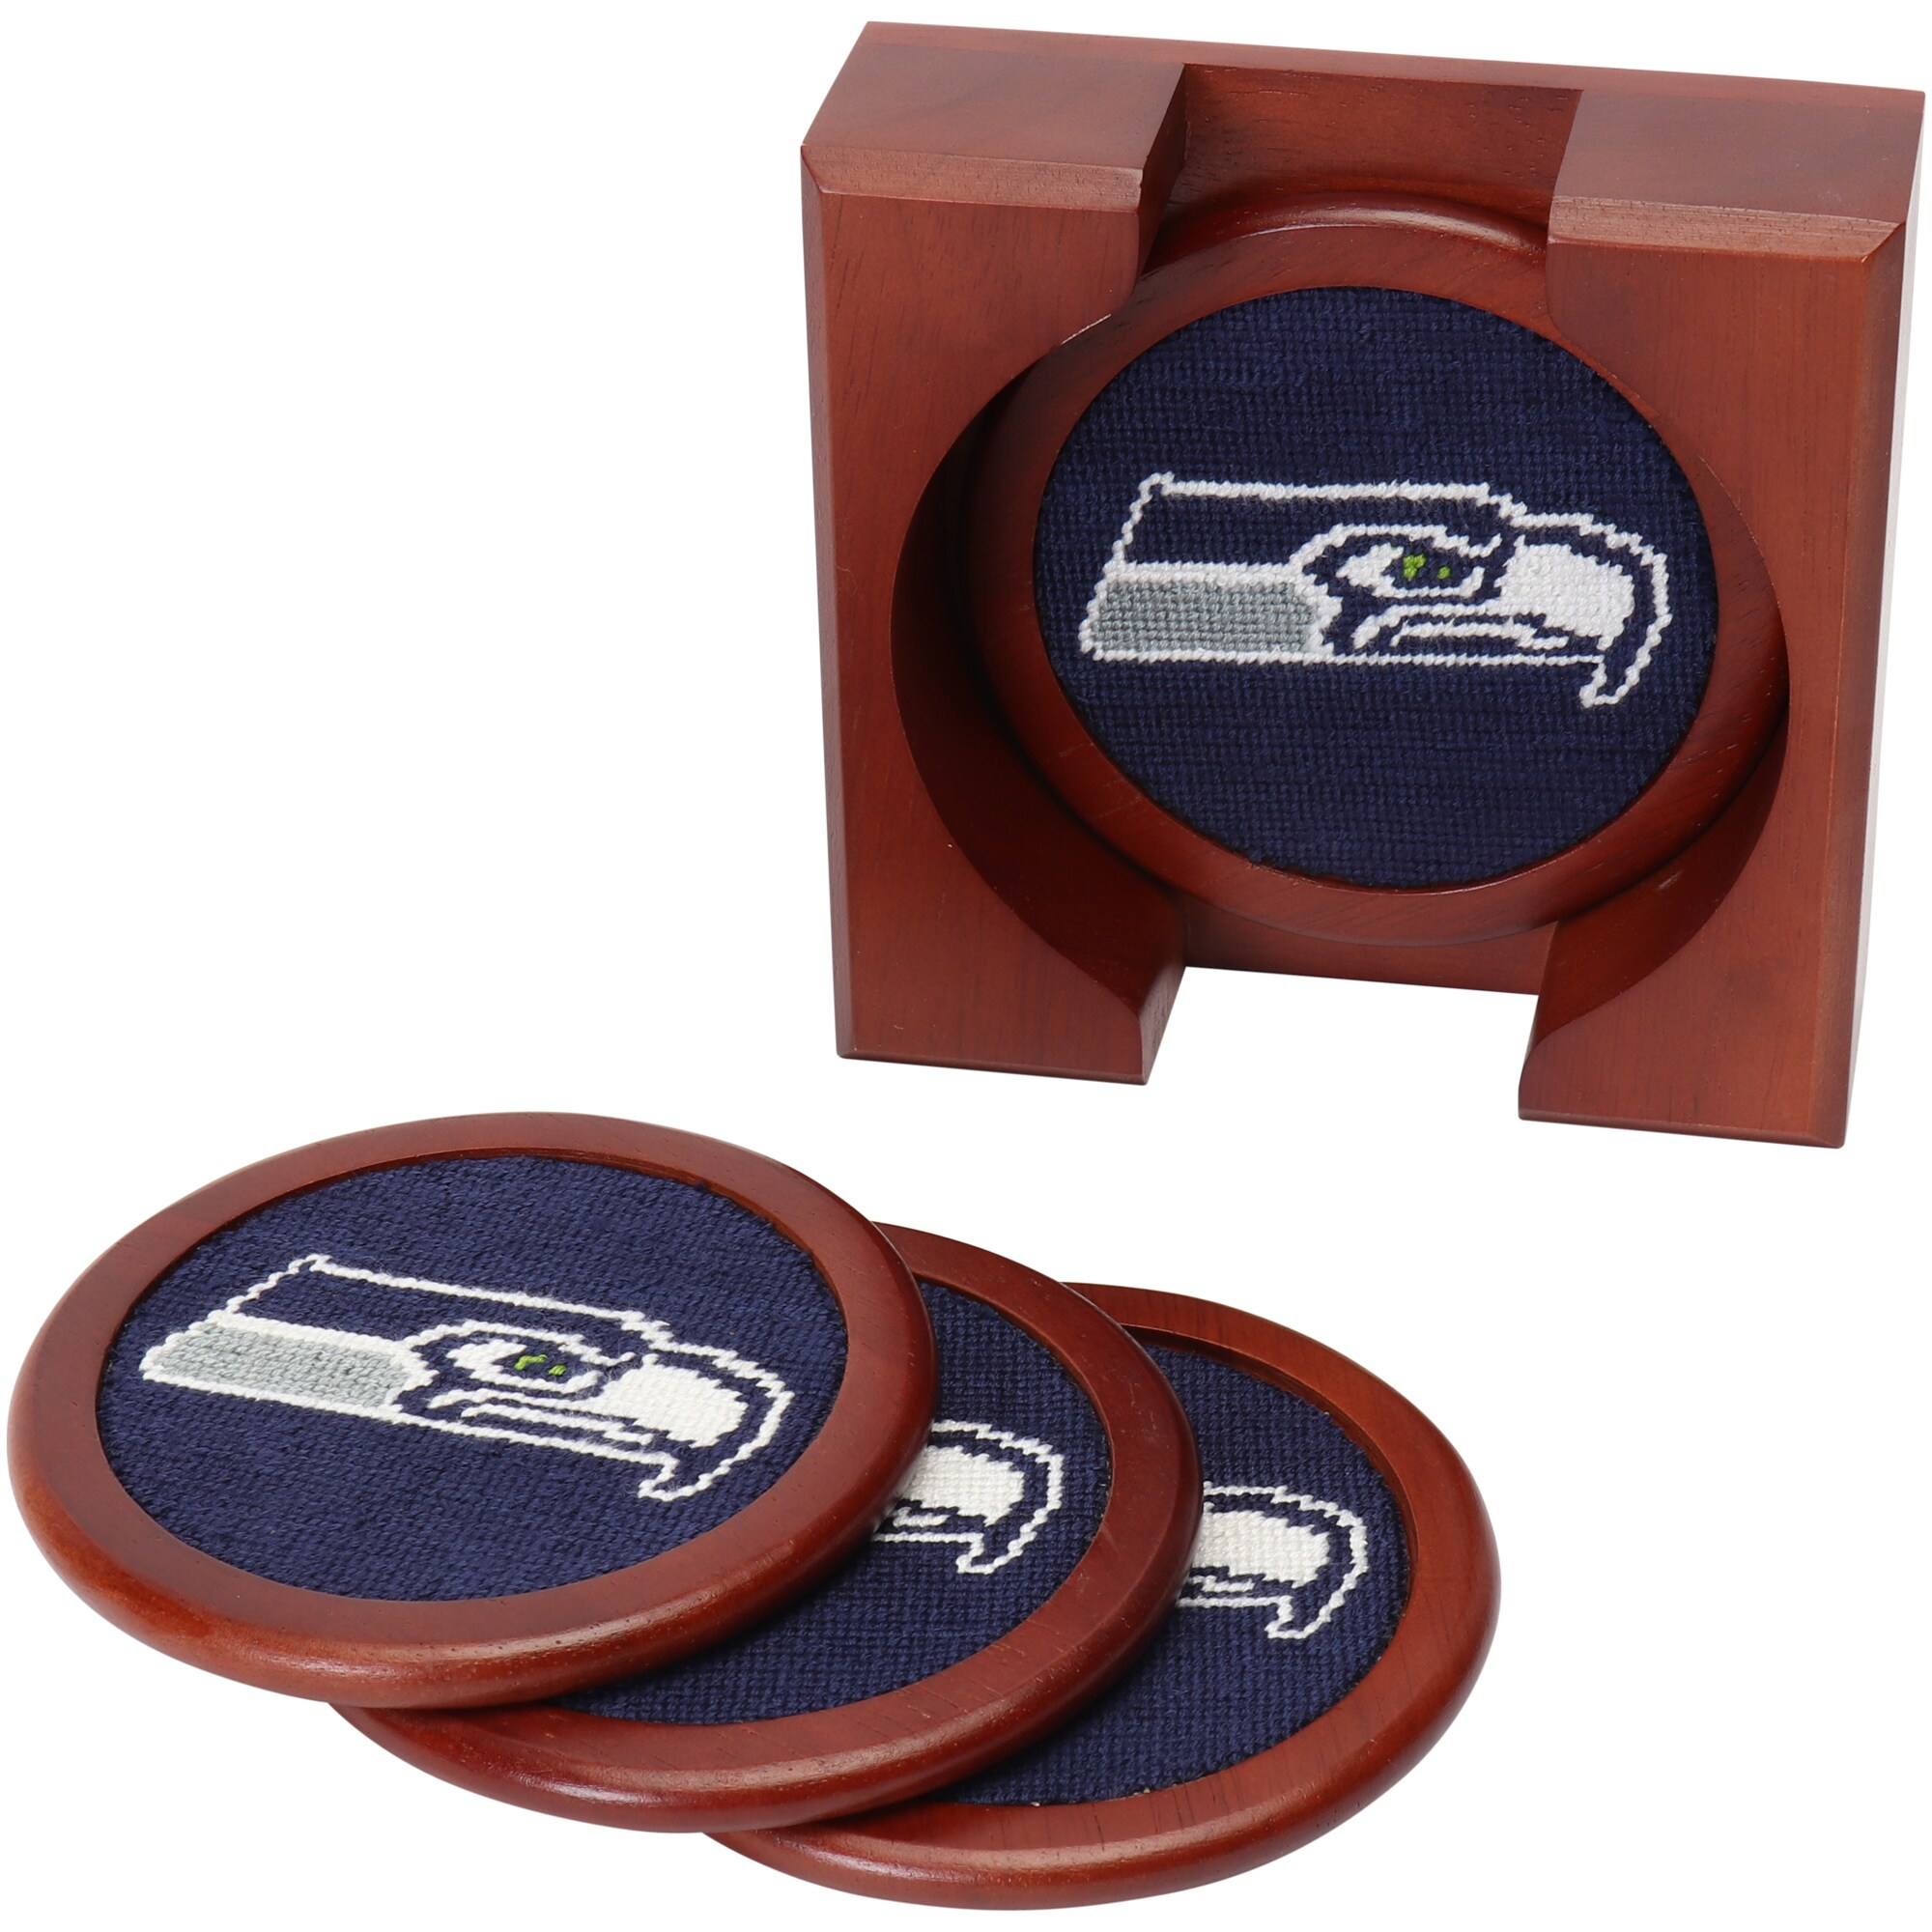 Seattle Seahawks Needlepoint Coaster Set